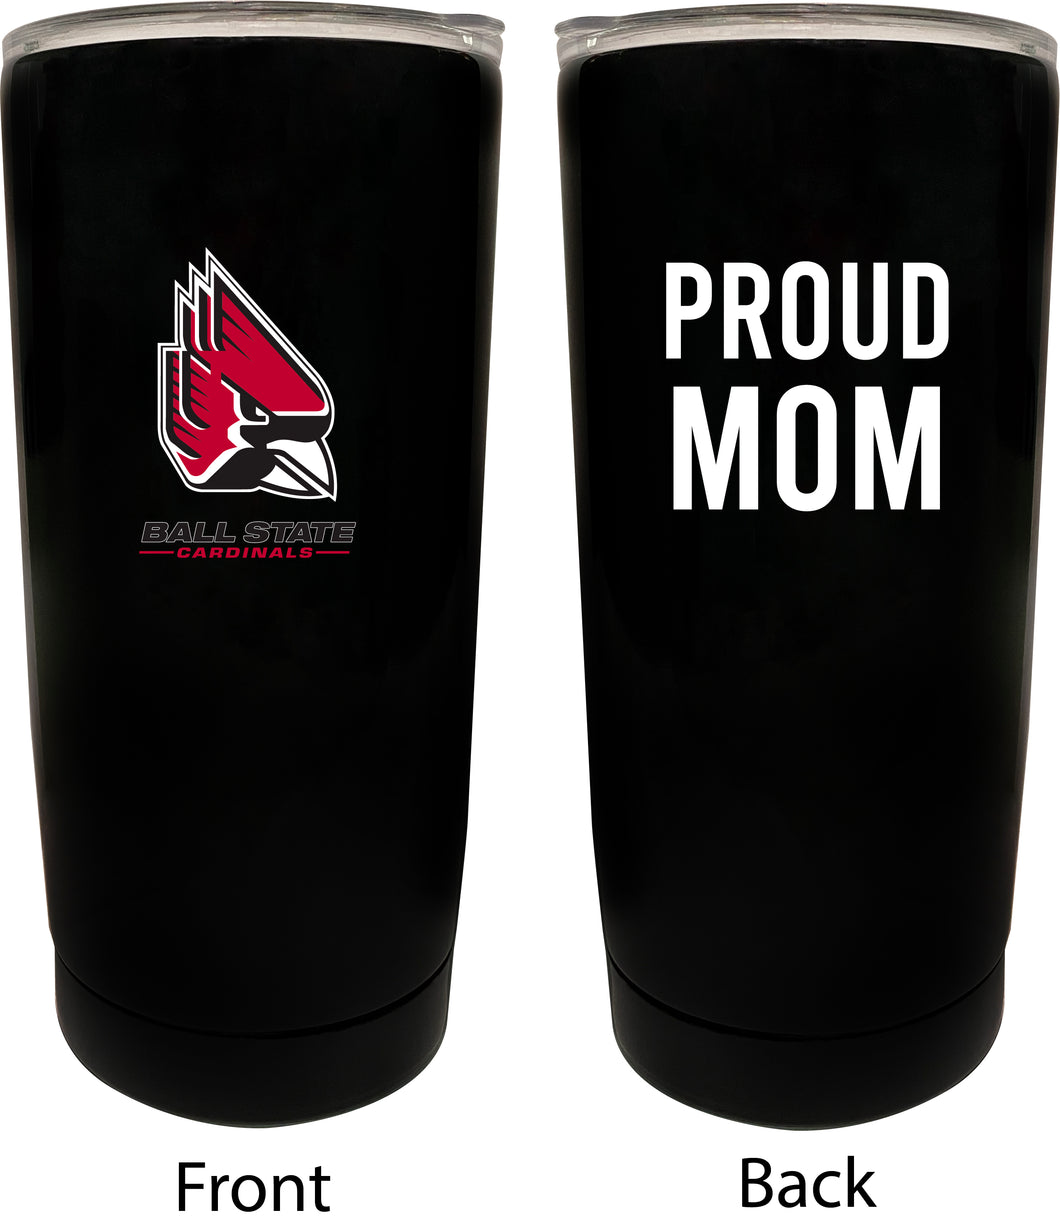 Ball State University Proud MOM Tumbler